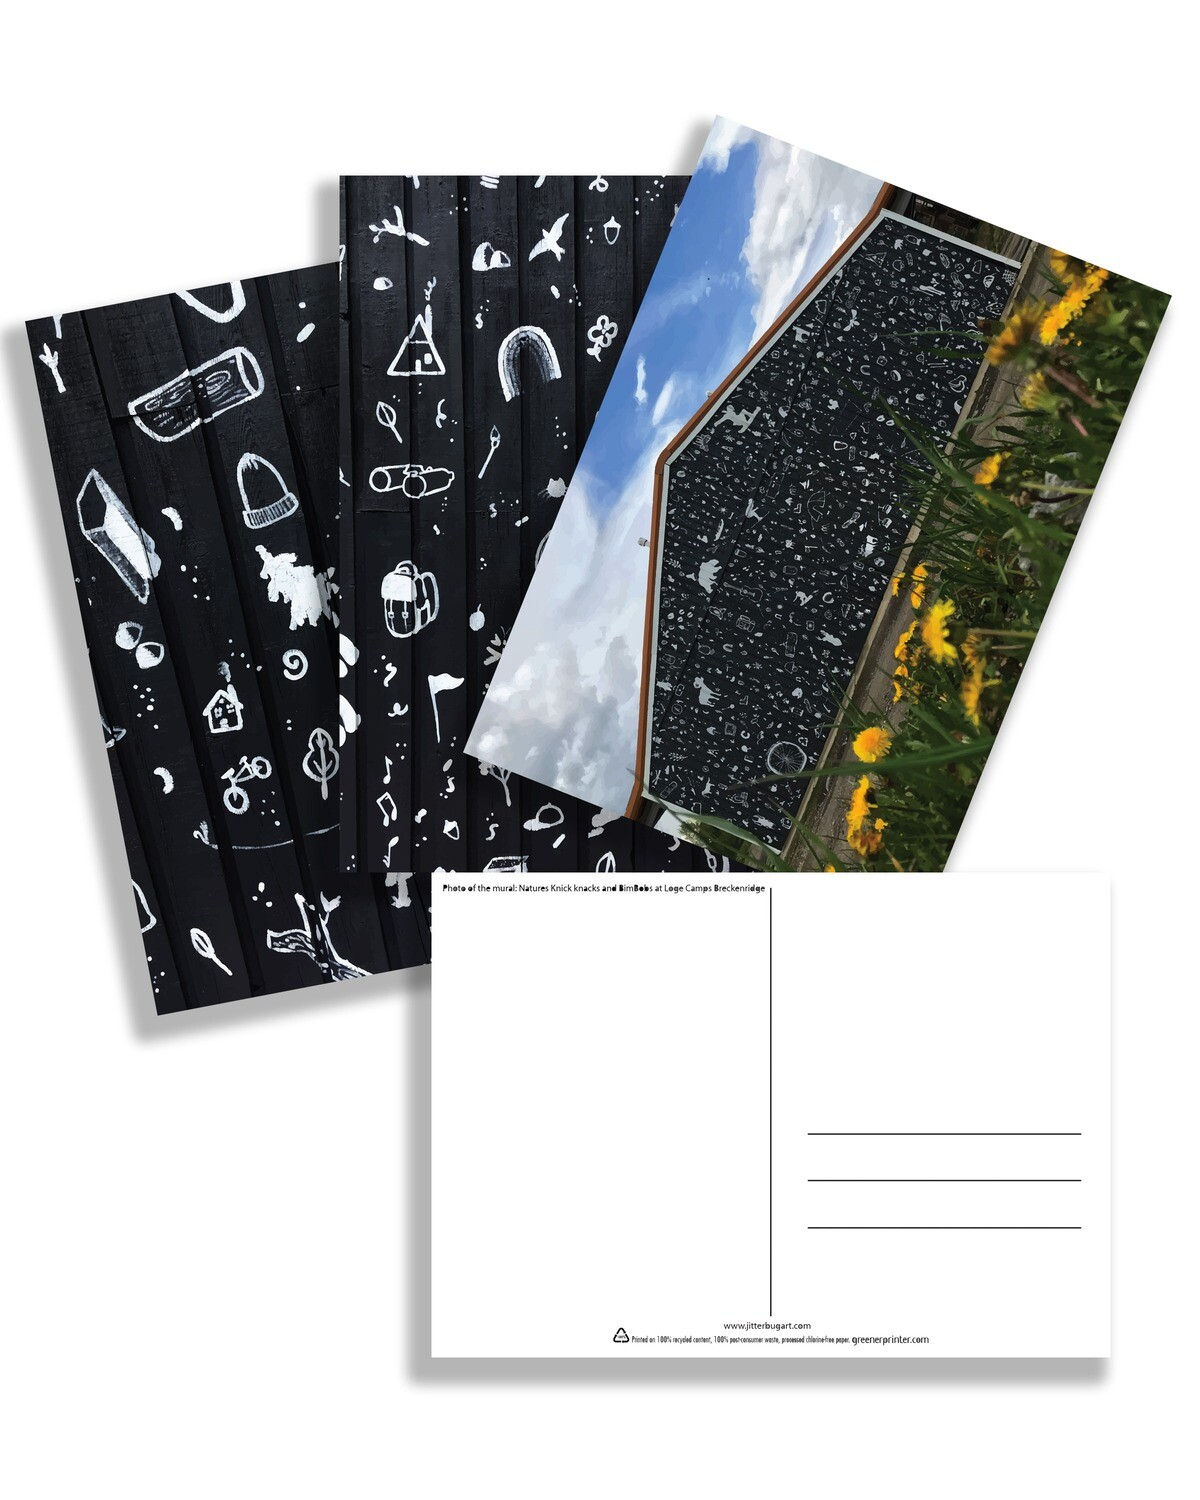 Natures Knick Knack and BimBobs- Postcard 3pack